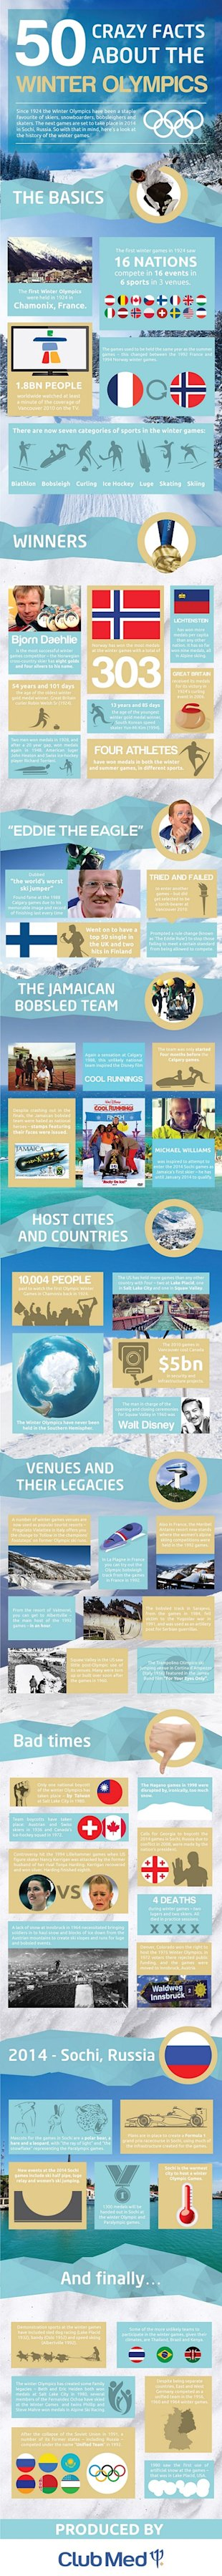 50 Crazy Facts About The Winter Olympics [Infographic] image winter olympic factsresize